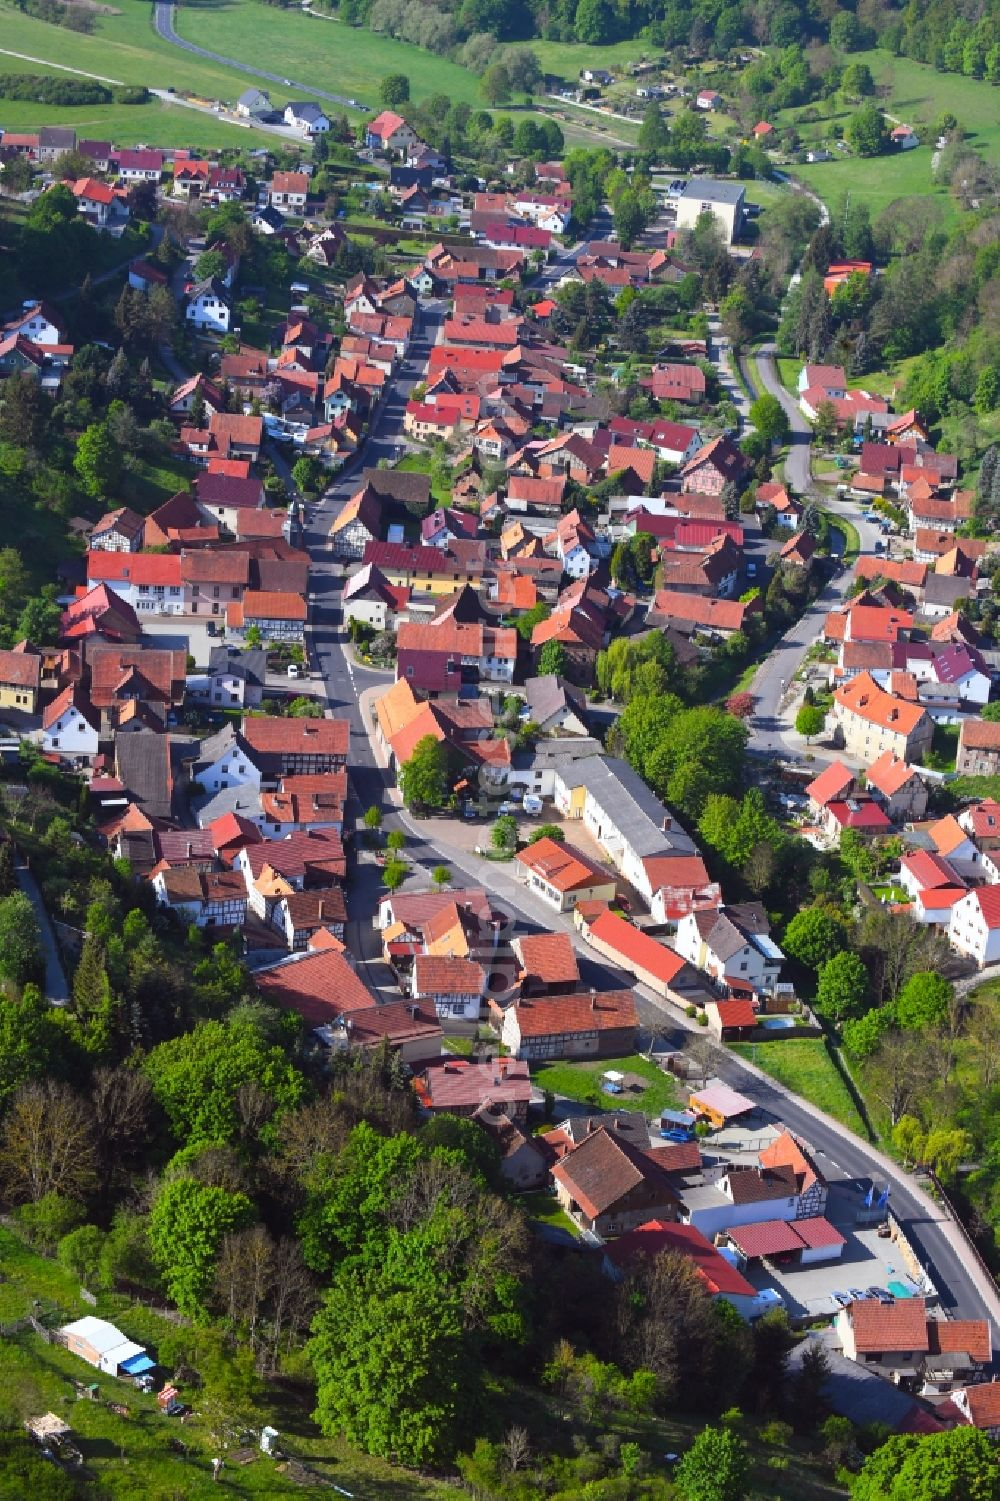 Aerial photograph Nazza - Location view of the streets and houses of residential areas in the valley landscape surrounded by mountains in Nazza in the state Thuringia, Germany